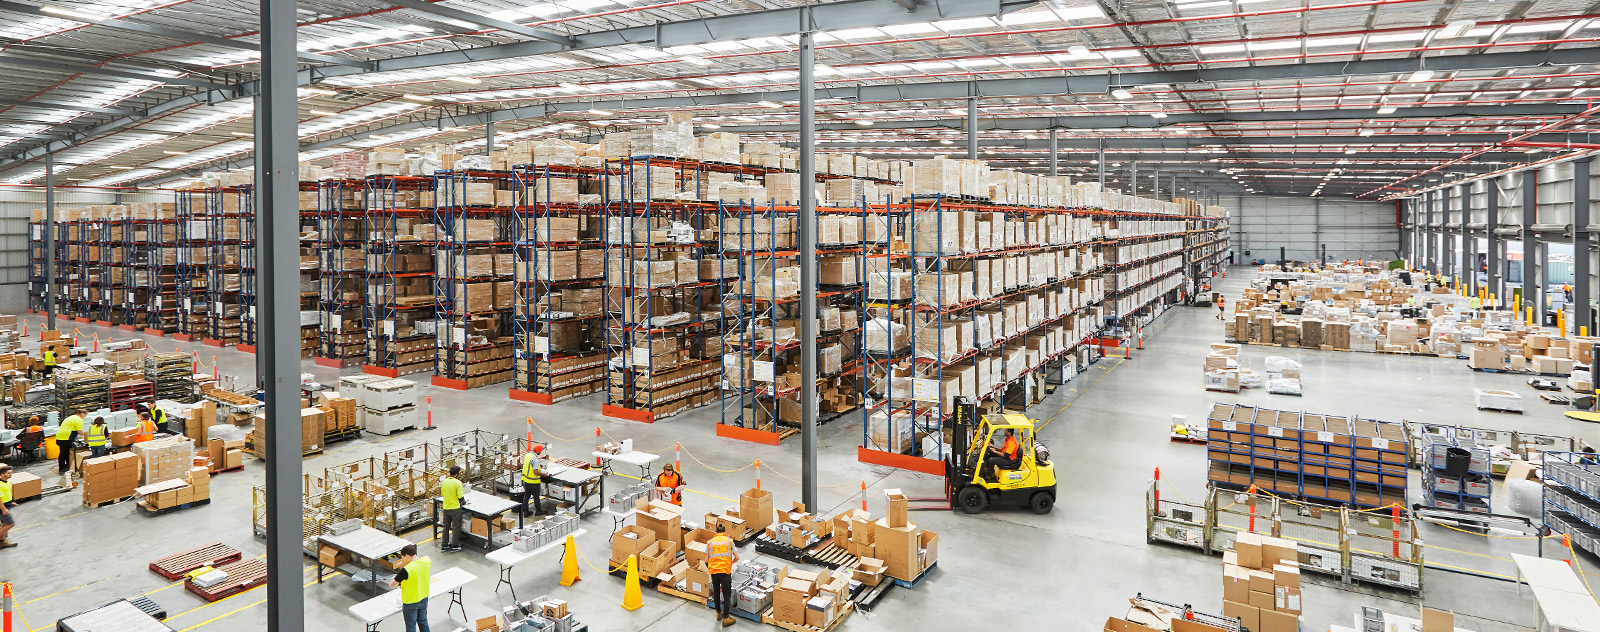 eStore Logistics 3PL warehousing experts